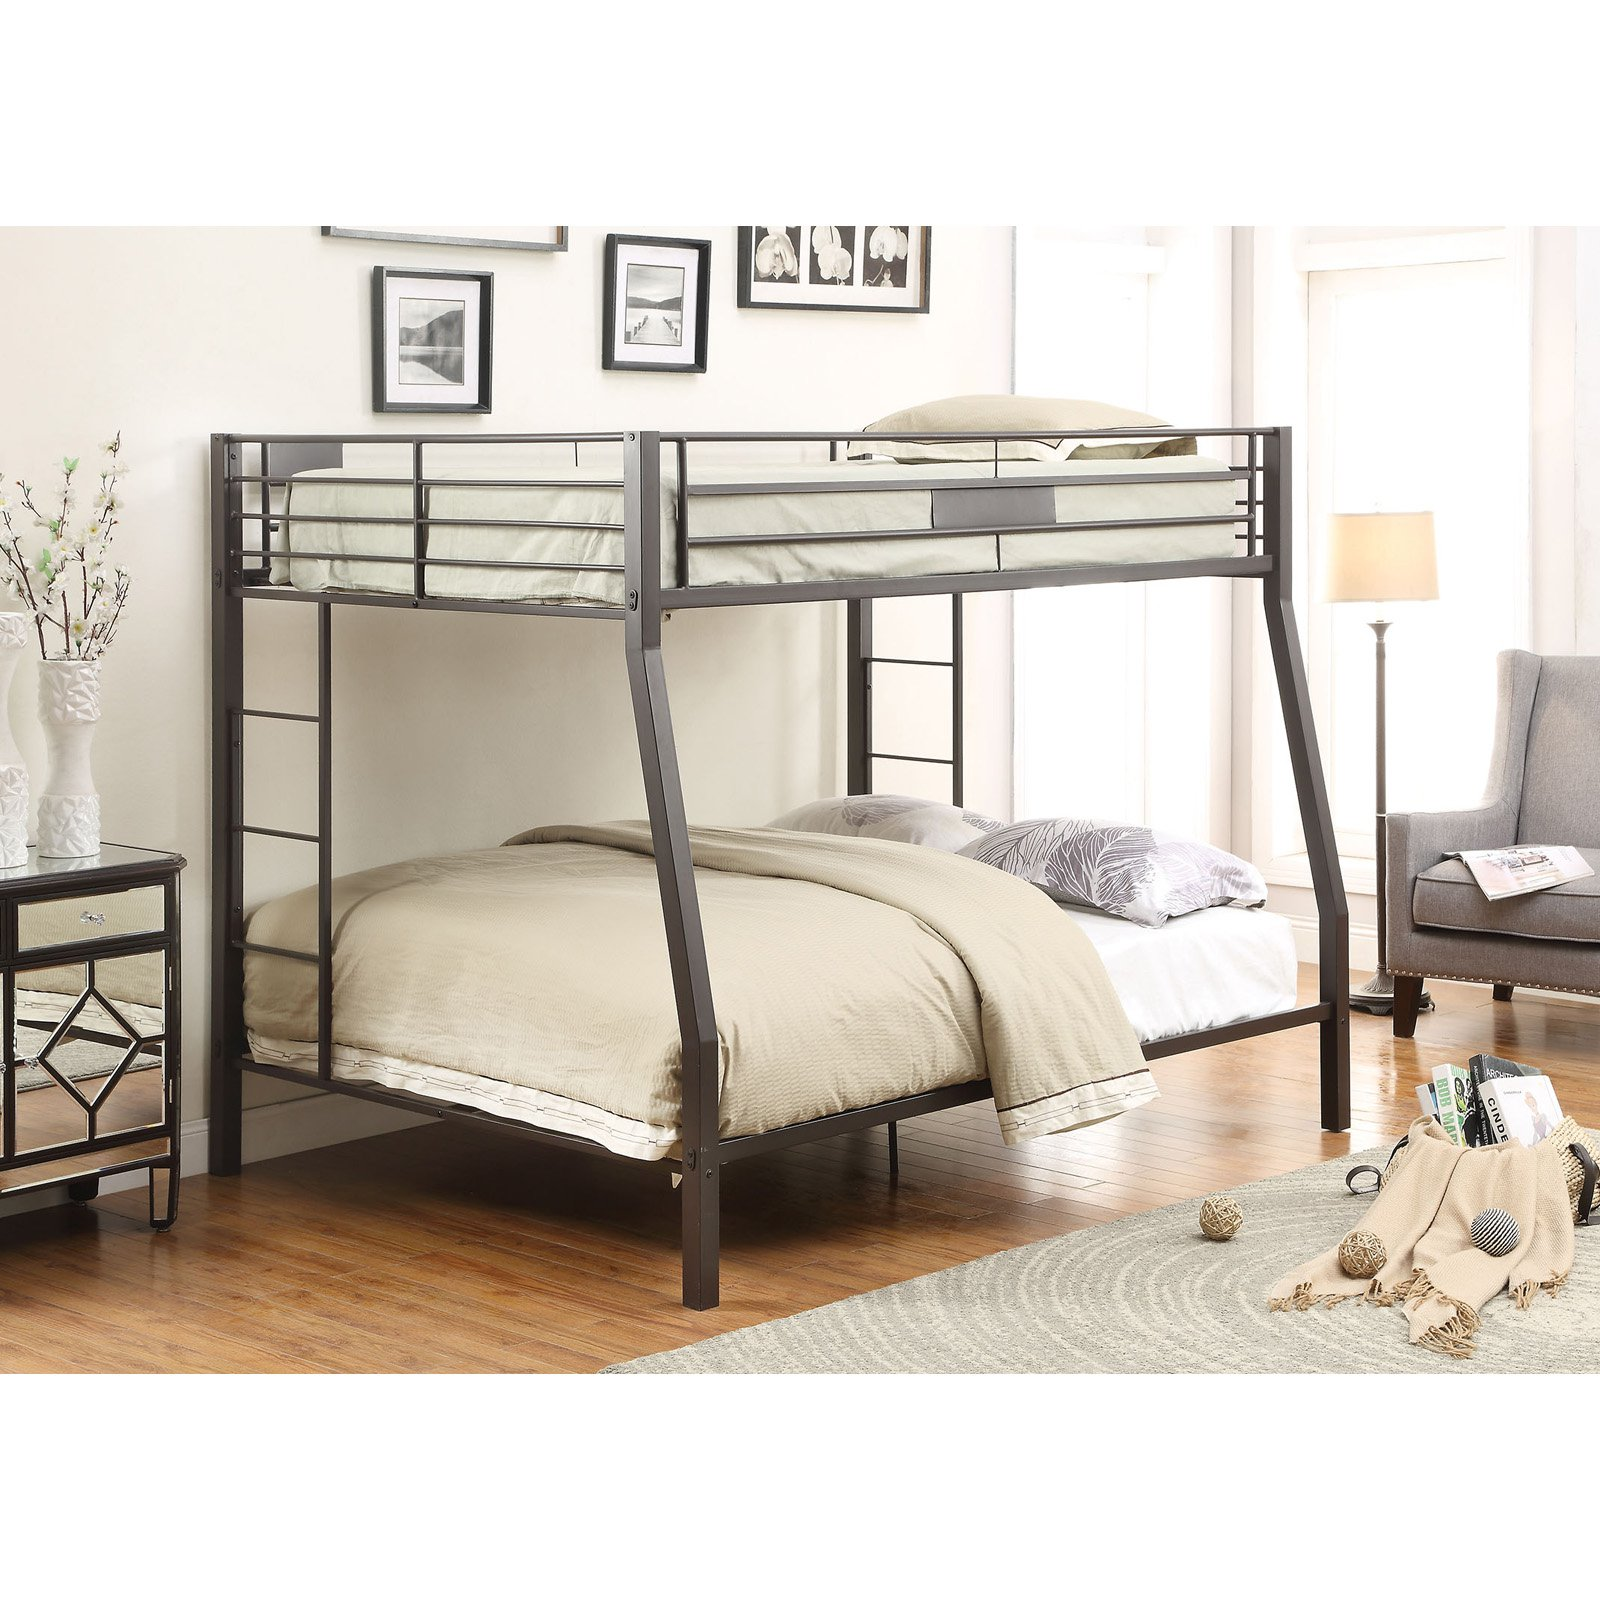 ACME Limbra Full XL over Queen Bunk Bed in Sandy Black, Multiple Sizes